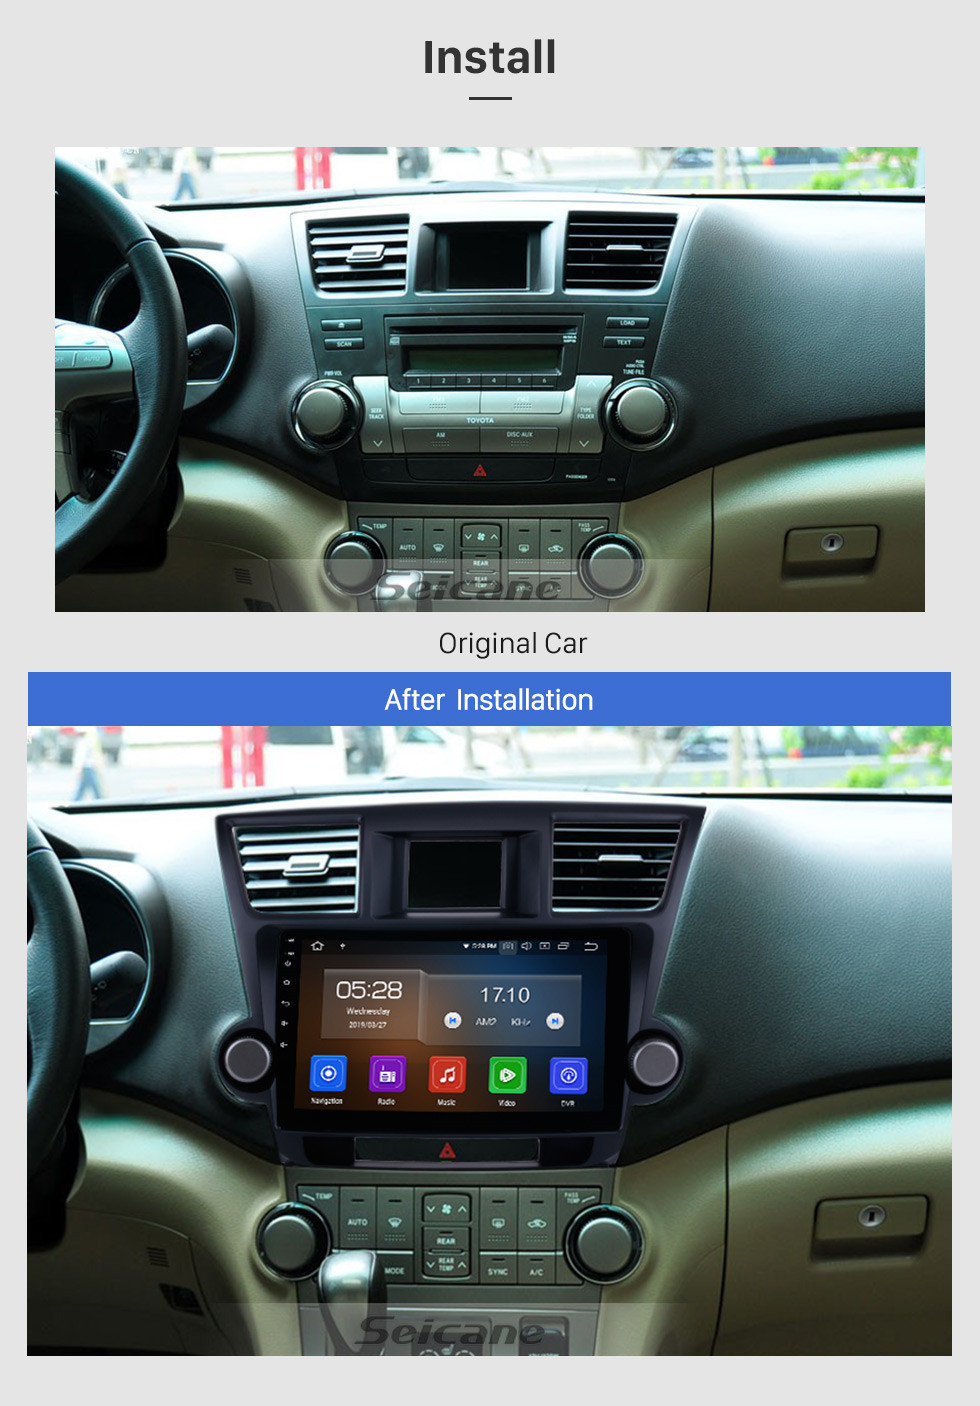 Seicane 10.1 inch Android 10.0 2008 2009 2010 2011-2014 TOYOTA HIGHLANDER GPS Navigation Bluetooth Radio WIFI USB DVD Player Support Backup Camera DVR OBD2 1080P Video HD TV